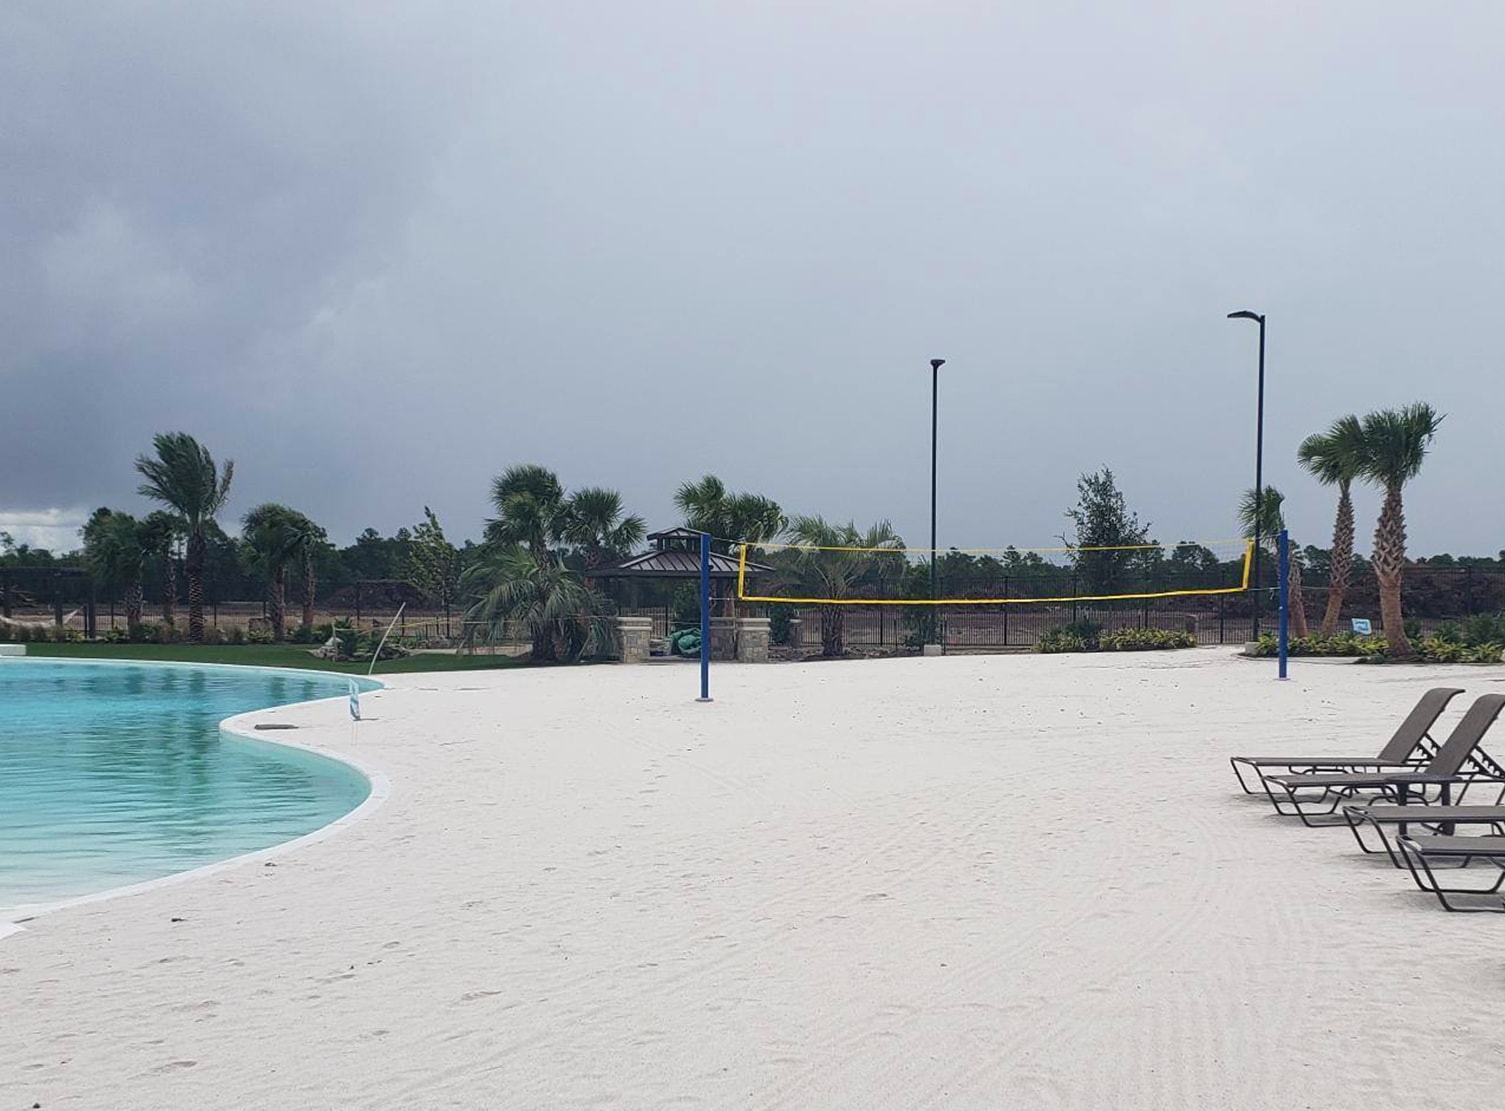 sand volleyball court on man made beach